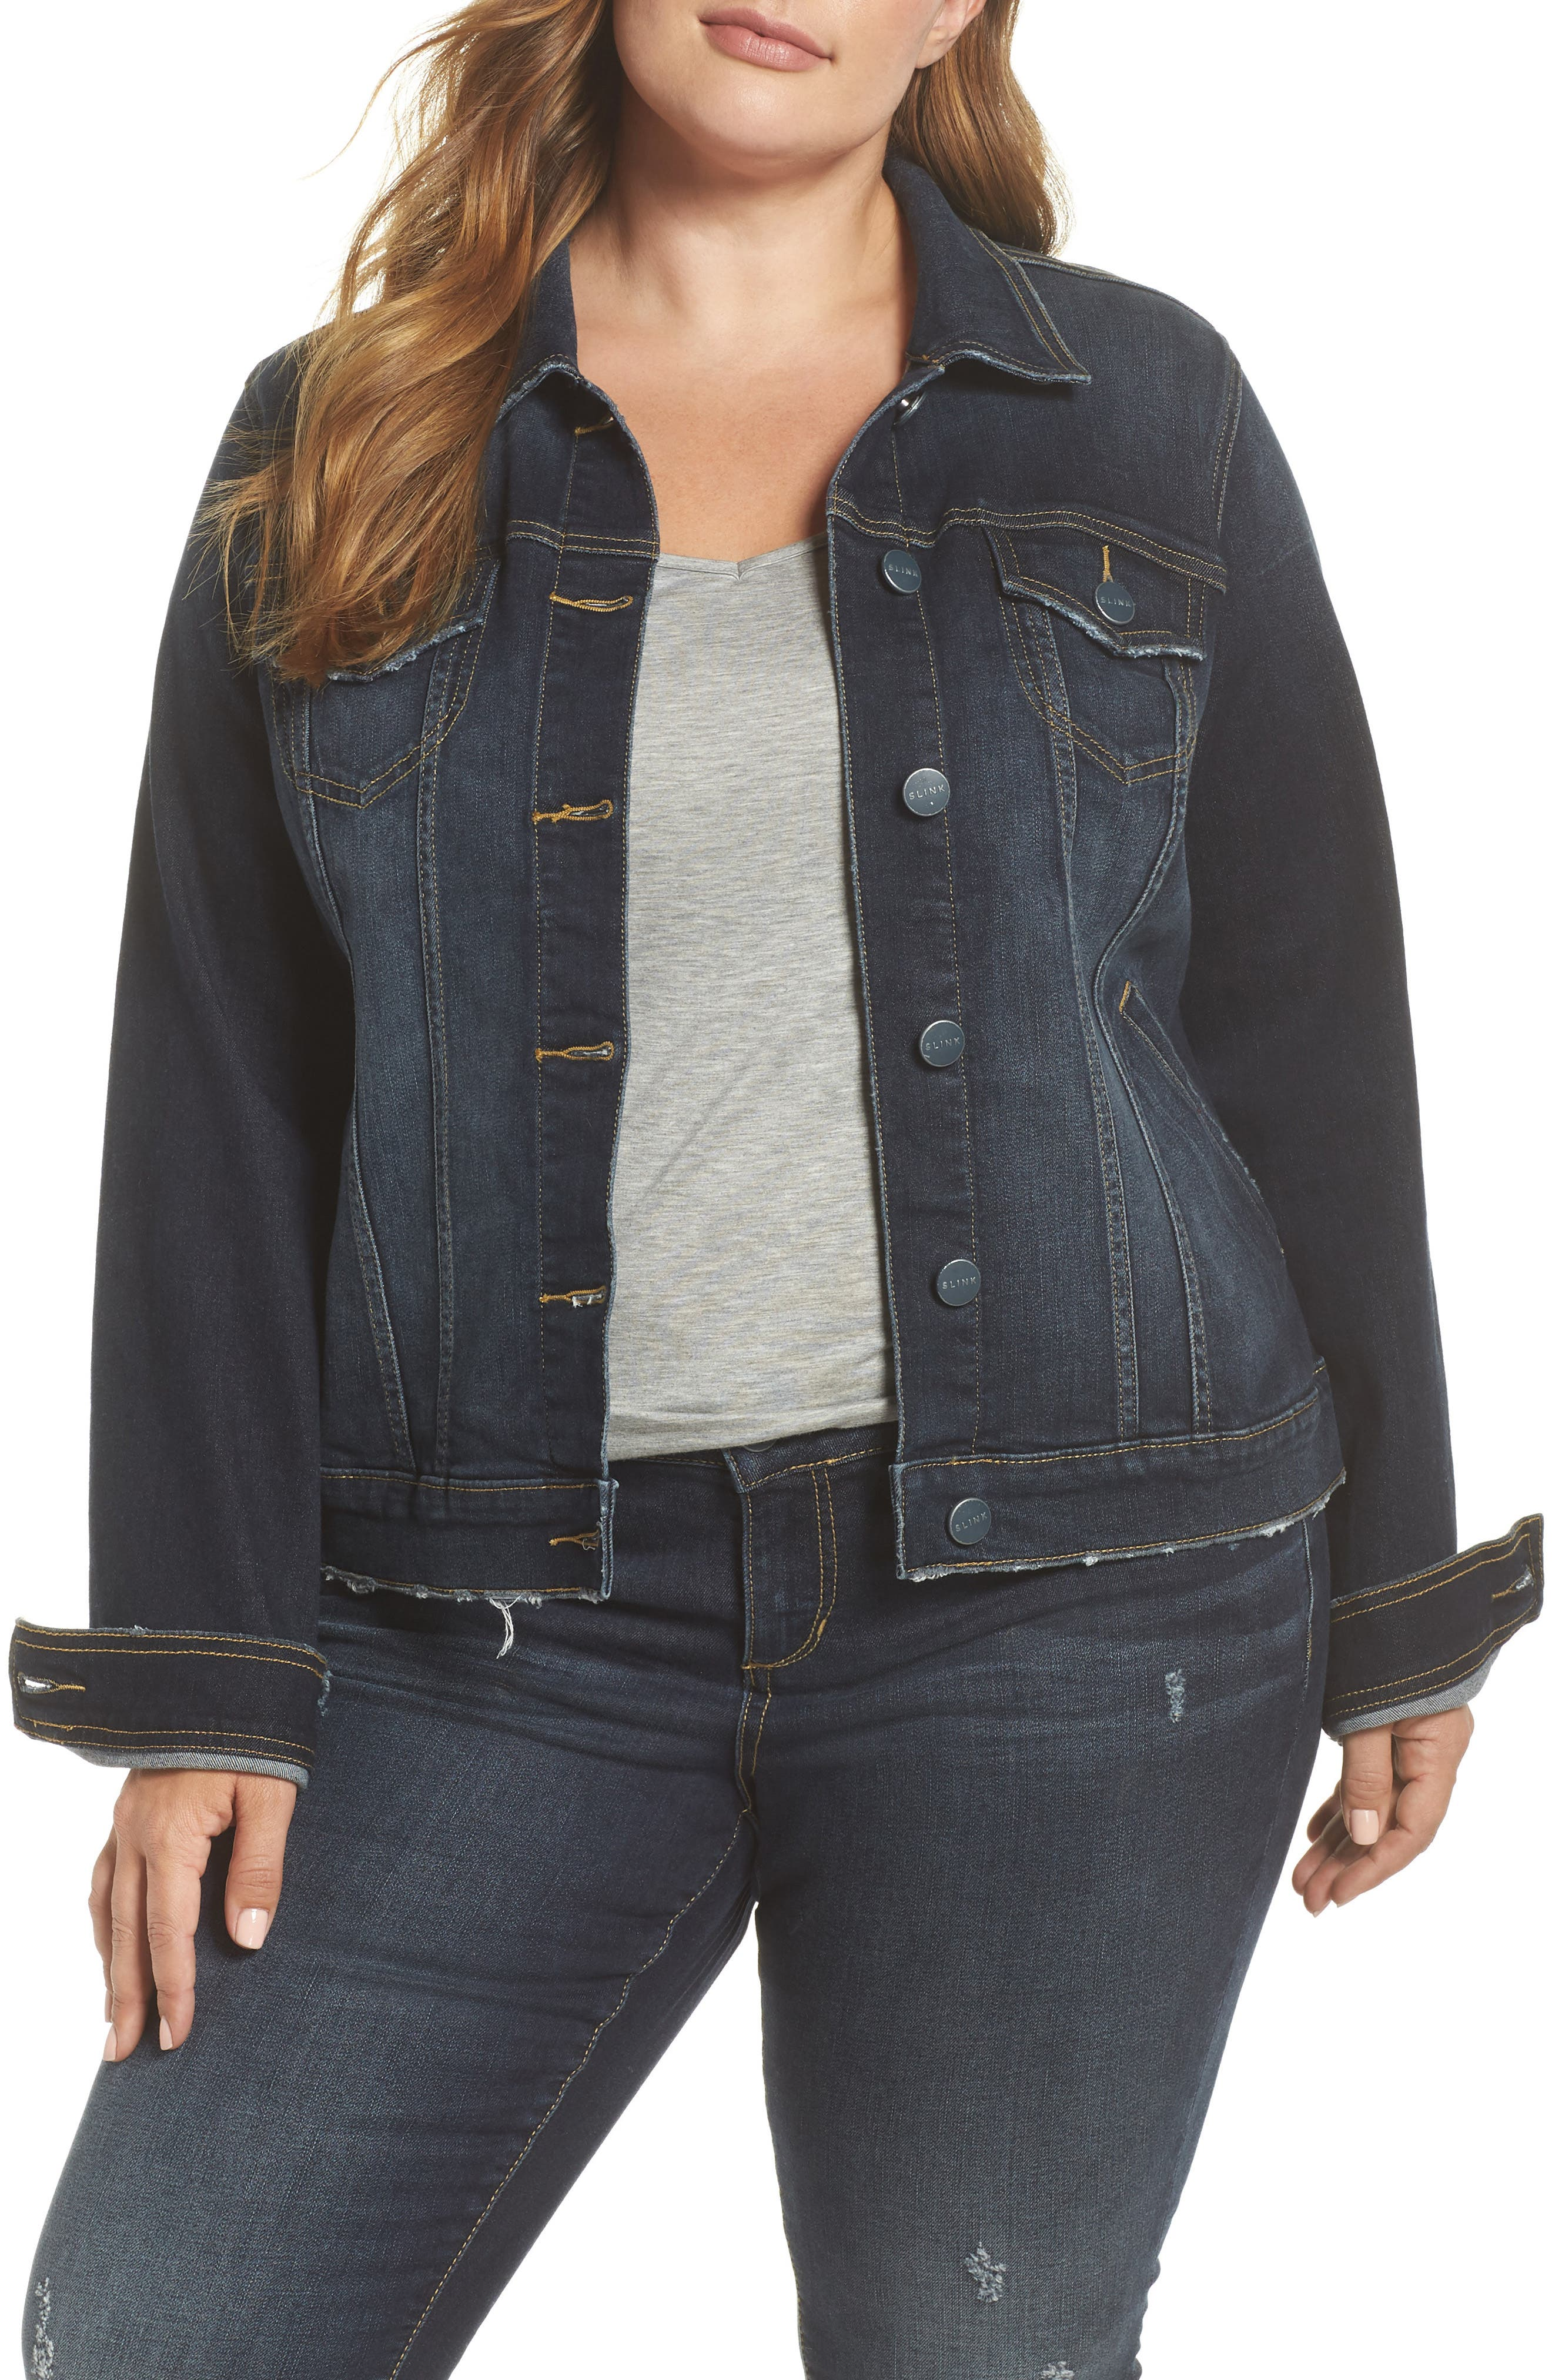 SLINK JEANS Stretch Denim Jacket, Main, color, BELLA